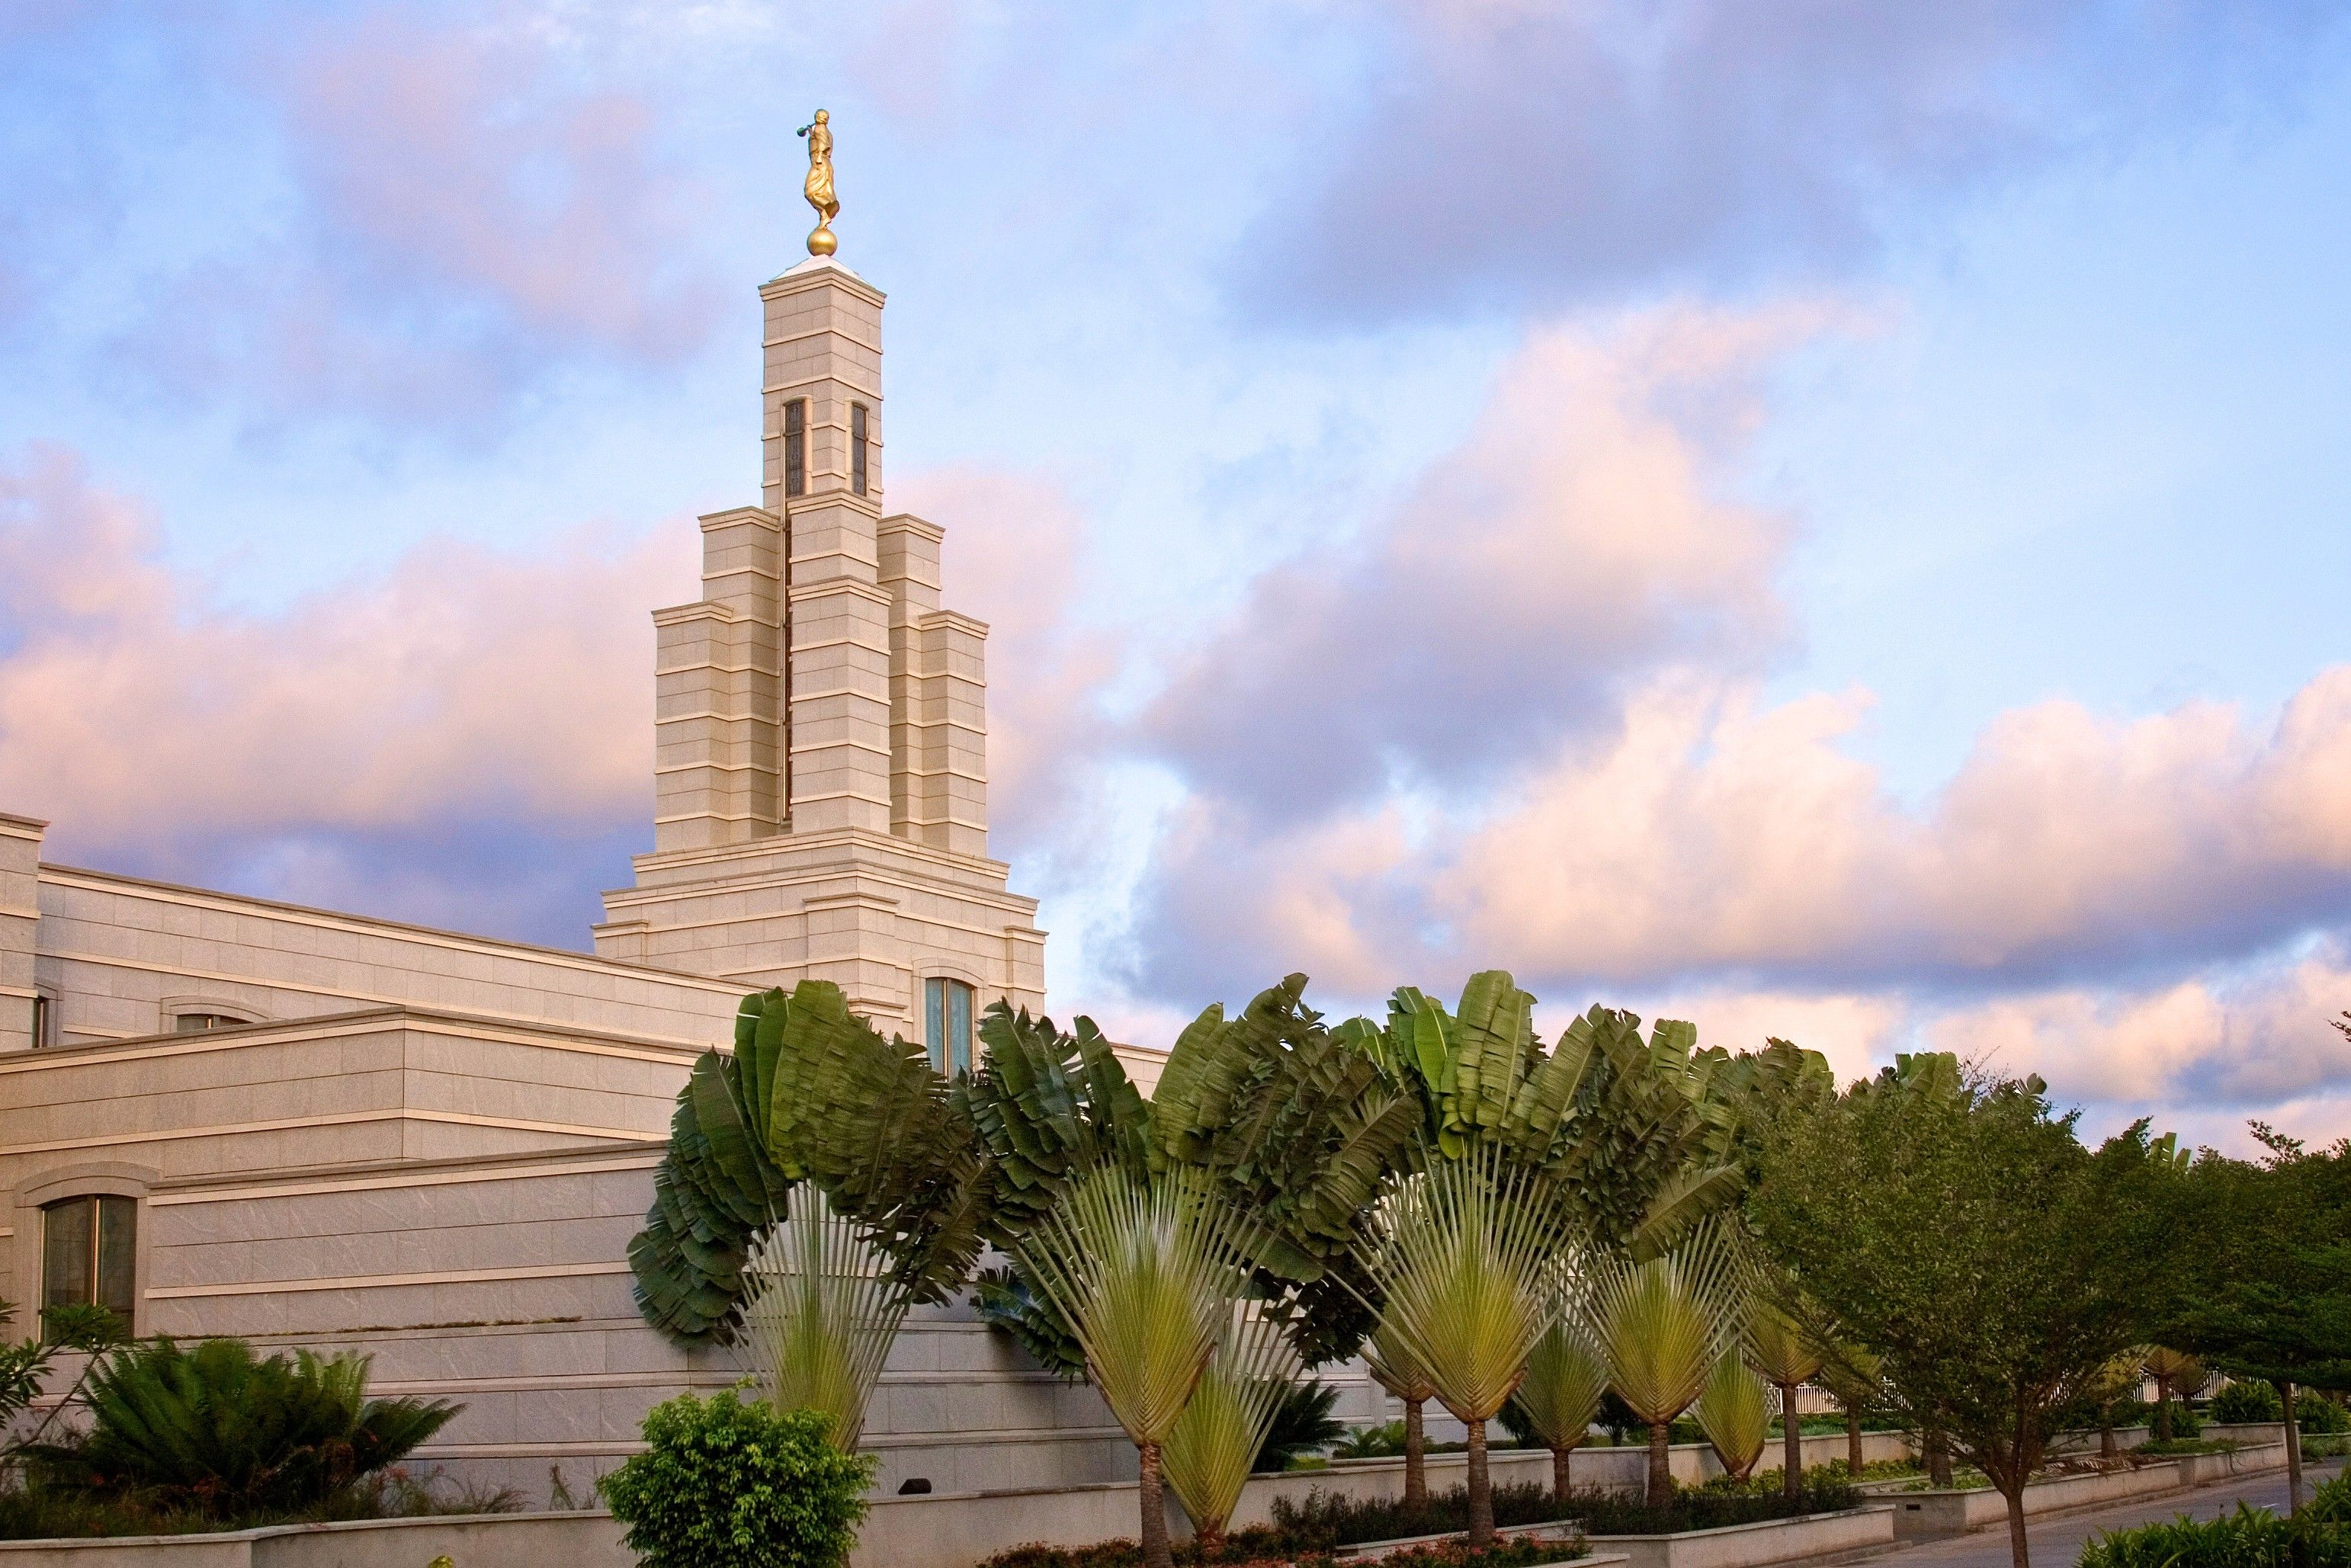 An exterior view of the Accra Ghana Temple during early evening.